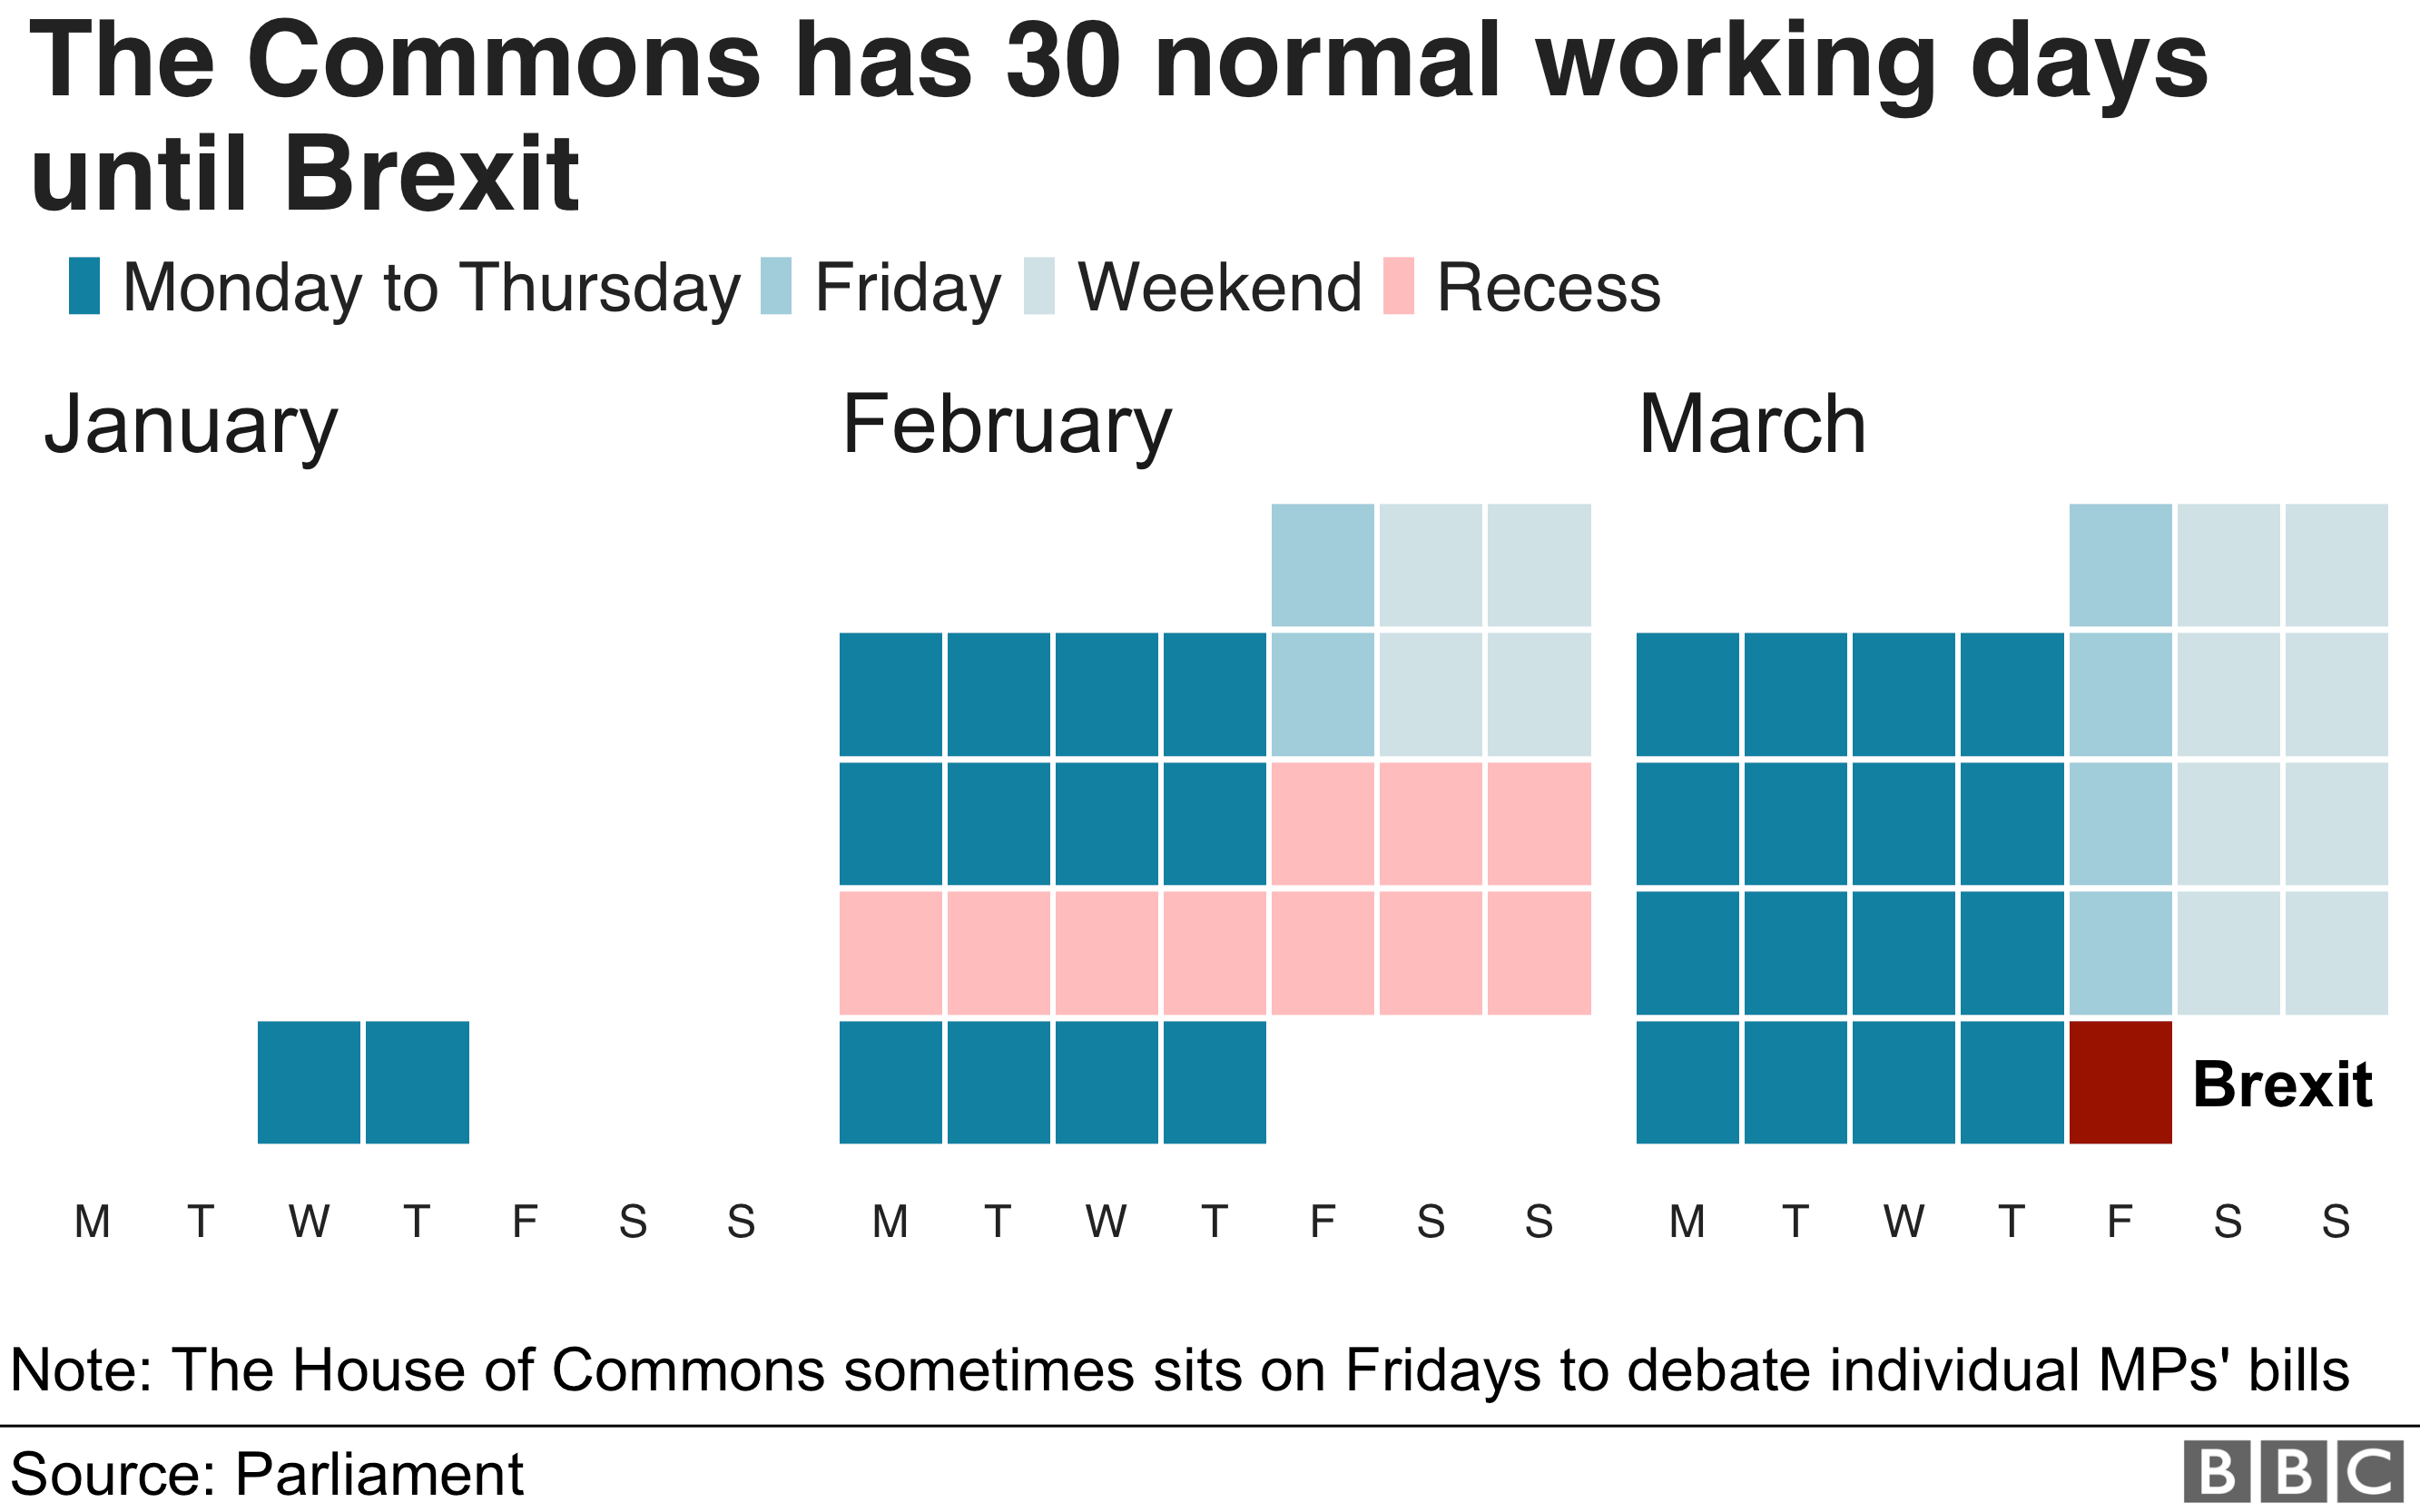 BBC graphic showing the number of working days until Brexit